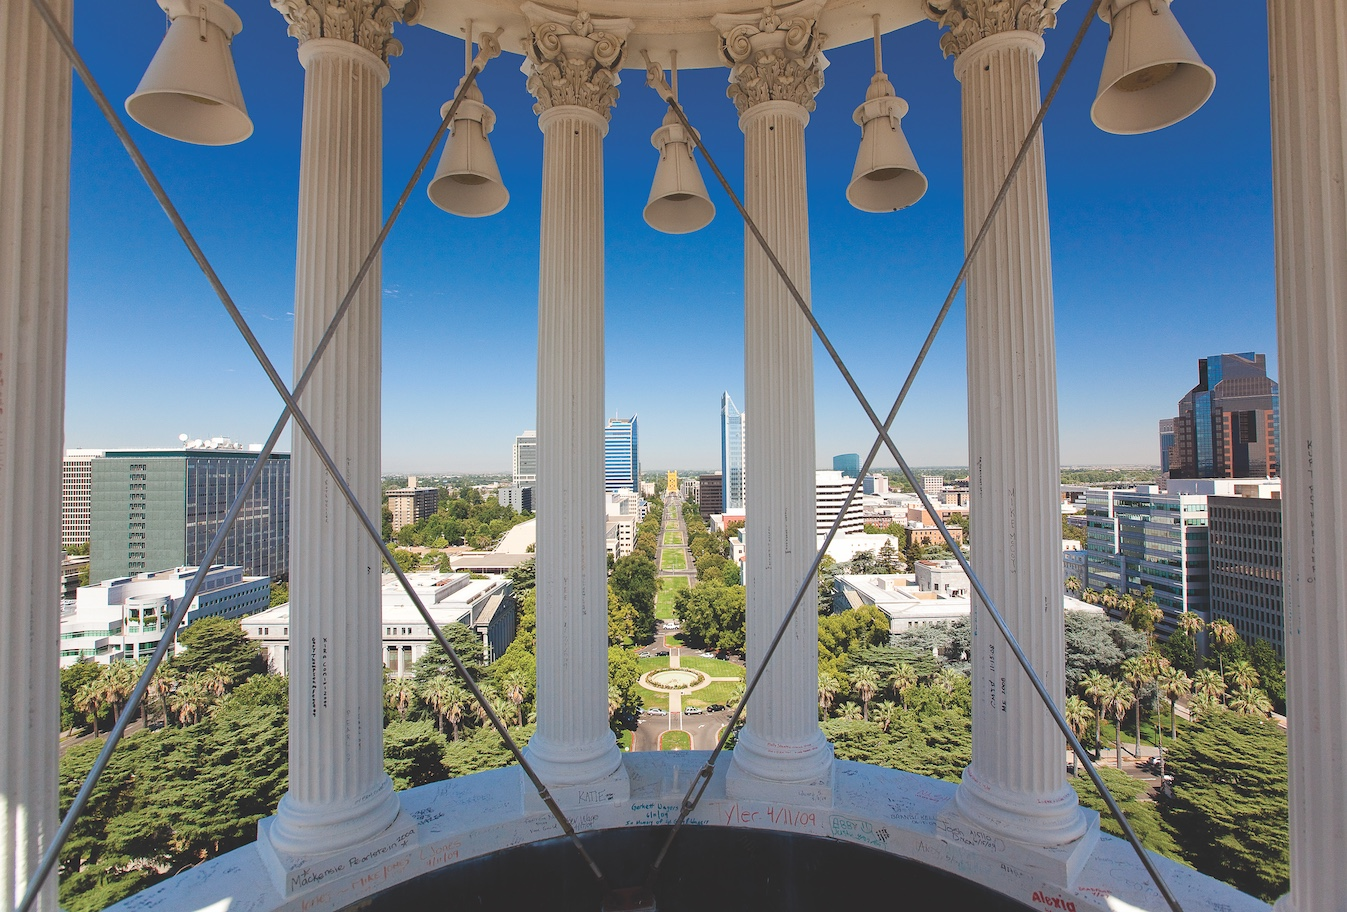 The view from the top of the Capitol dome, closed to the public since World War II. Reopening it, as Colorado and Kansas have done with theirs, would create an instant civic amenity. (Photo by Marc Thomas Kallweit)